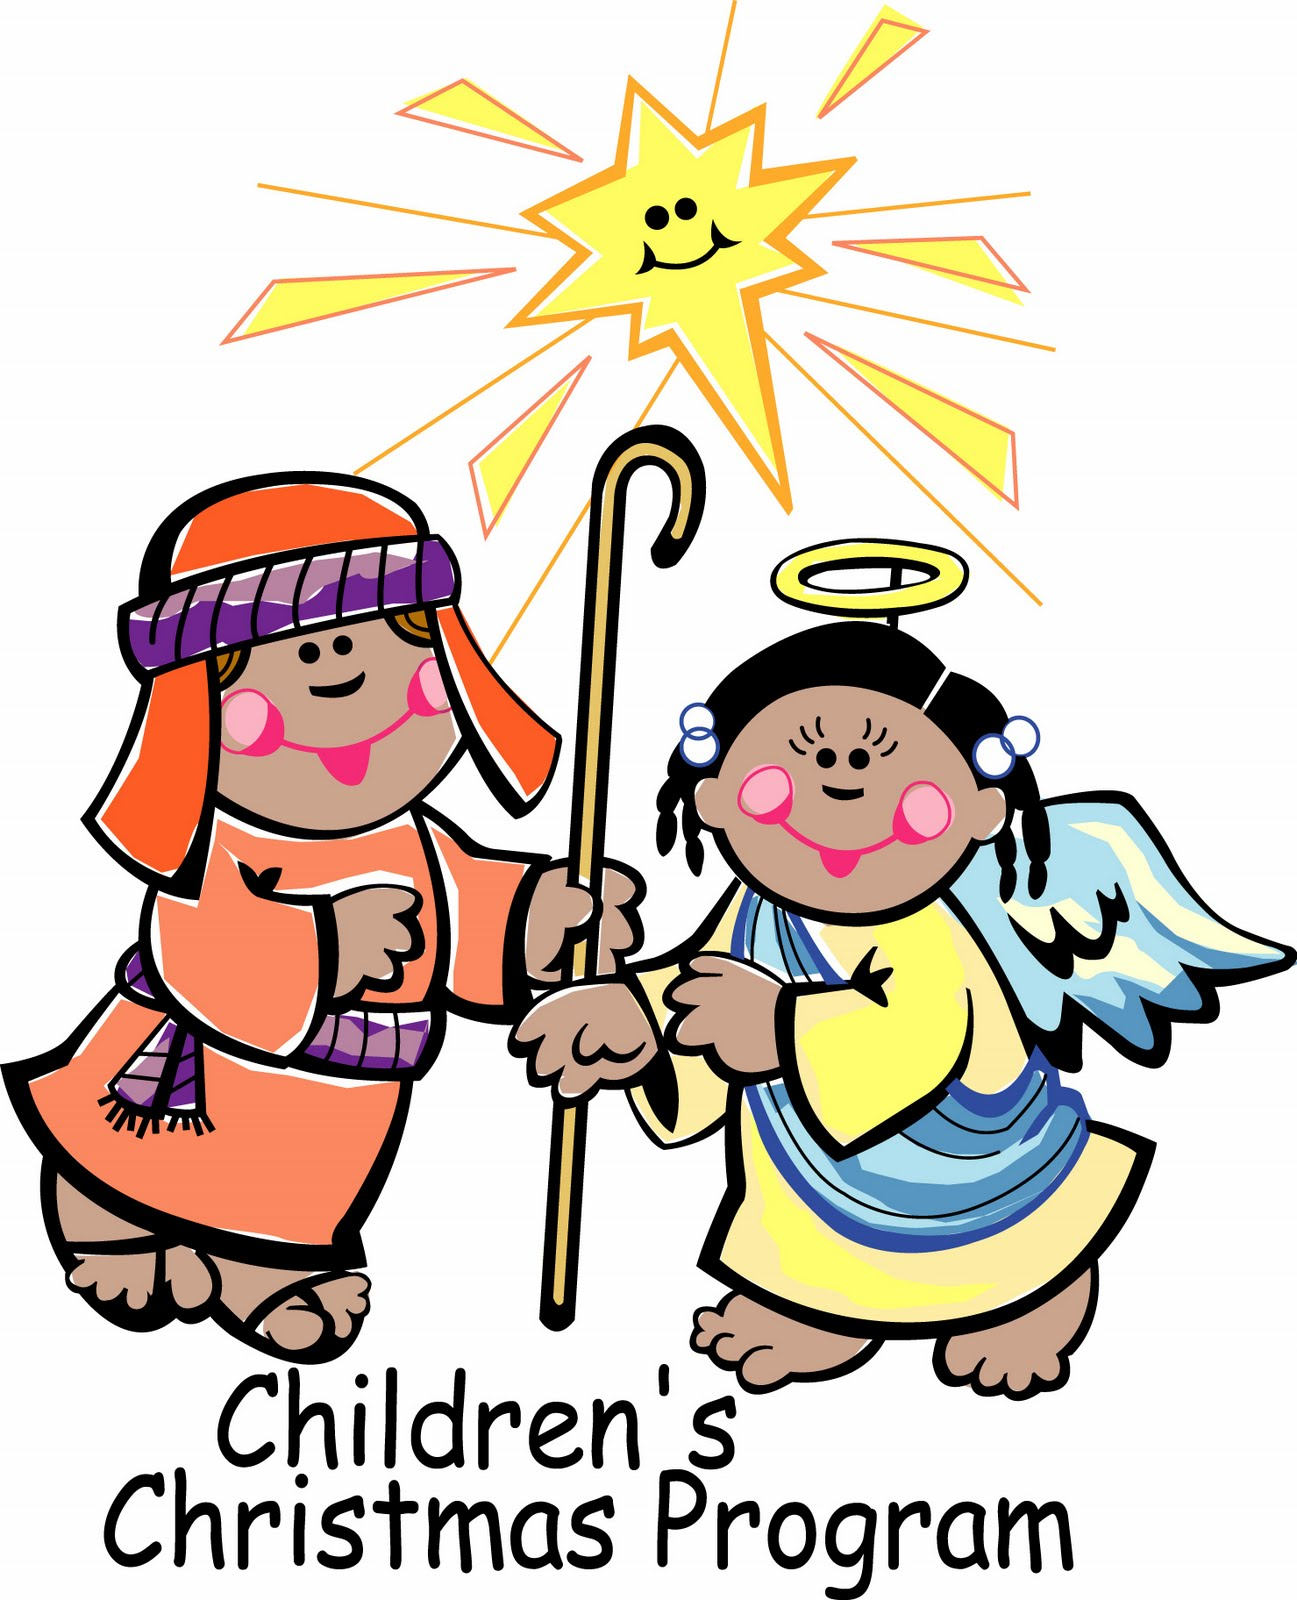 Childrens at getdrawings com. Religion clipart church program picture download